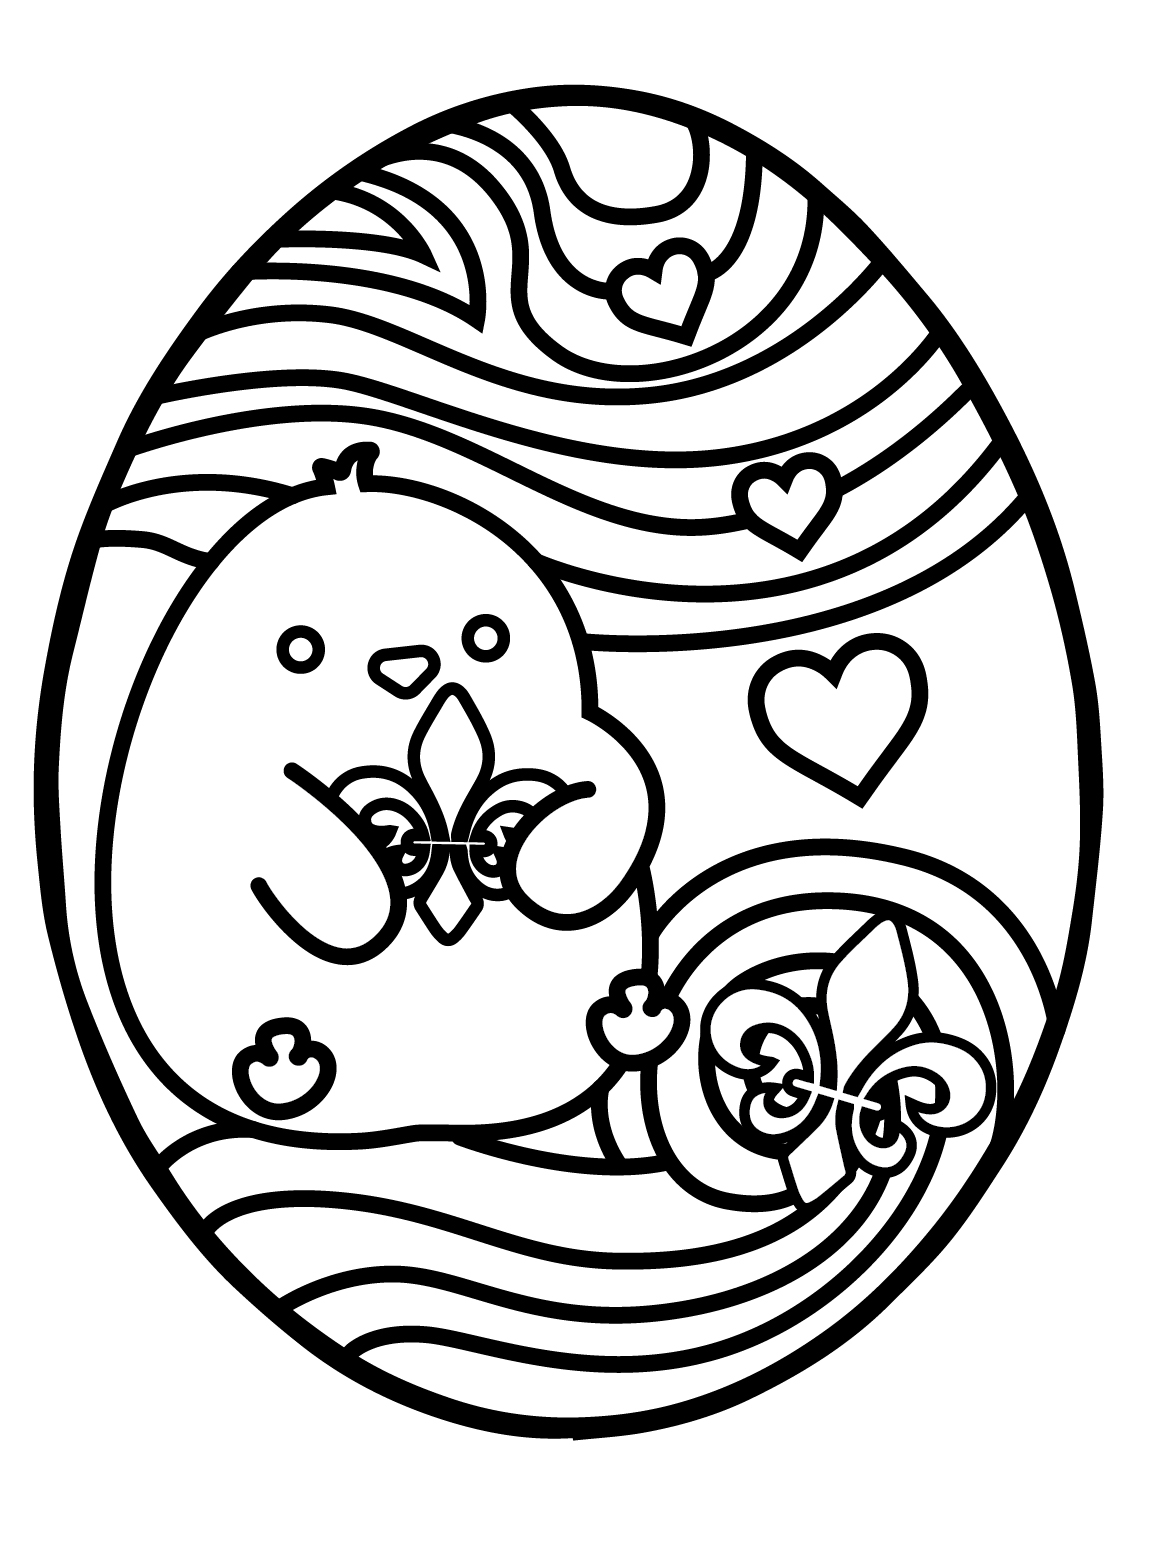 egg for colouring here39s how to join in the great wheeling easter egg hunt colouring egg for